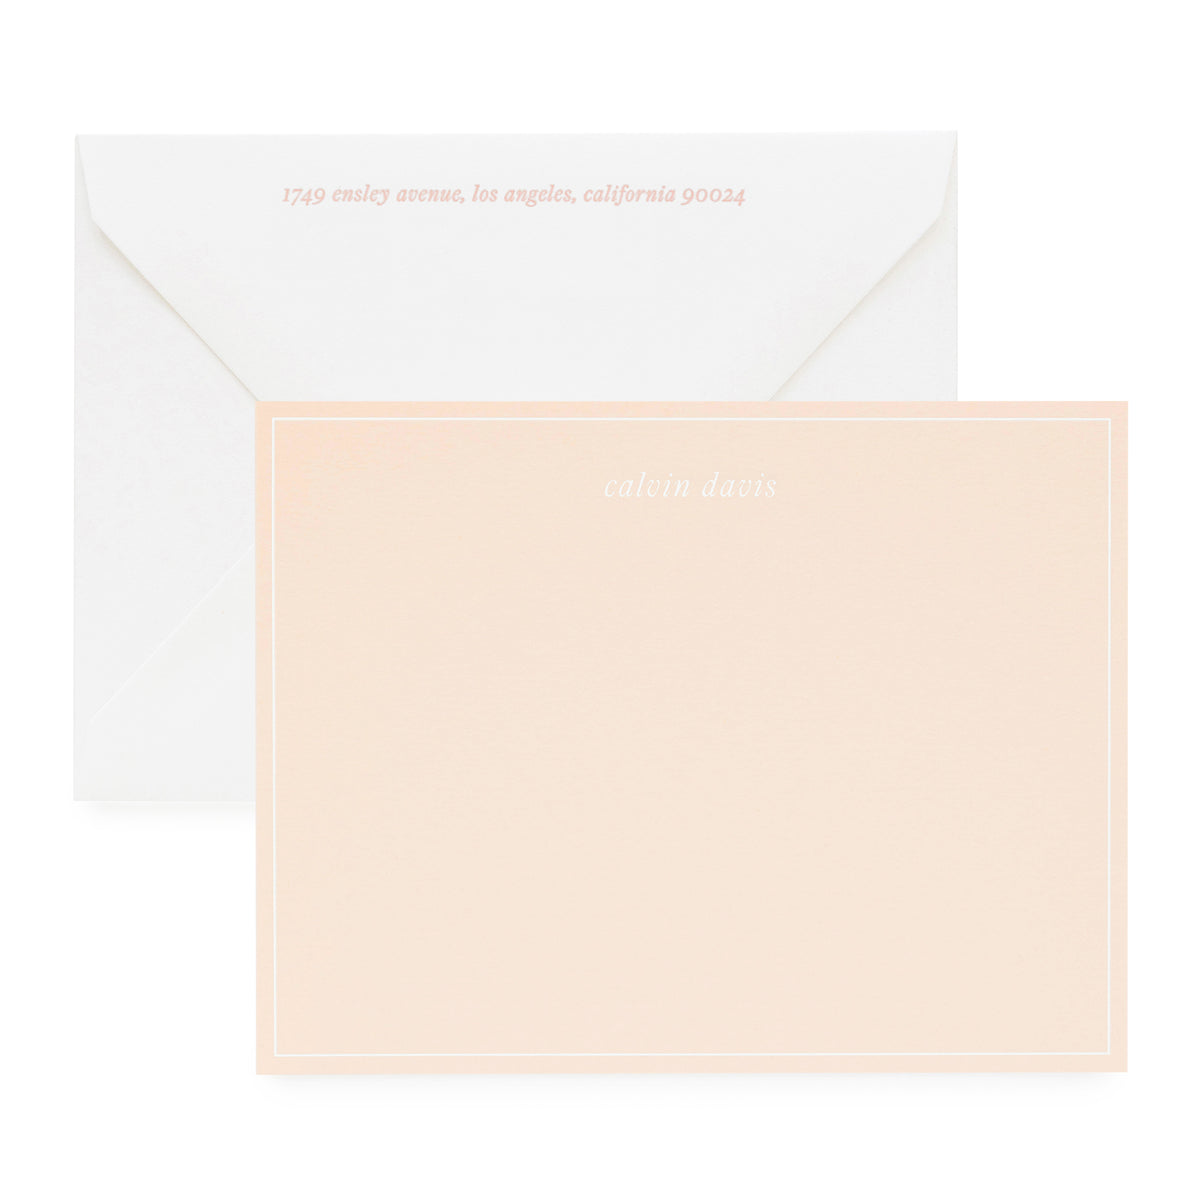 Pale pink stationery set with pink letterpress return address on envelope